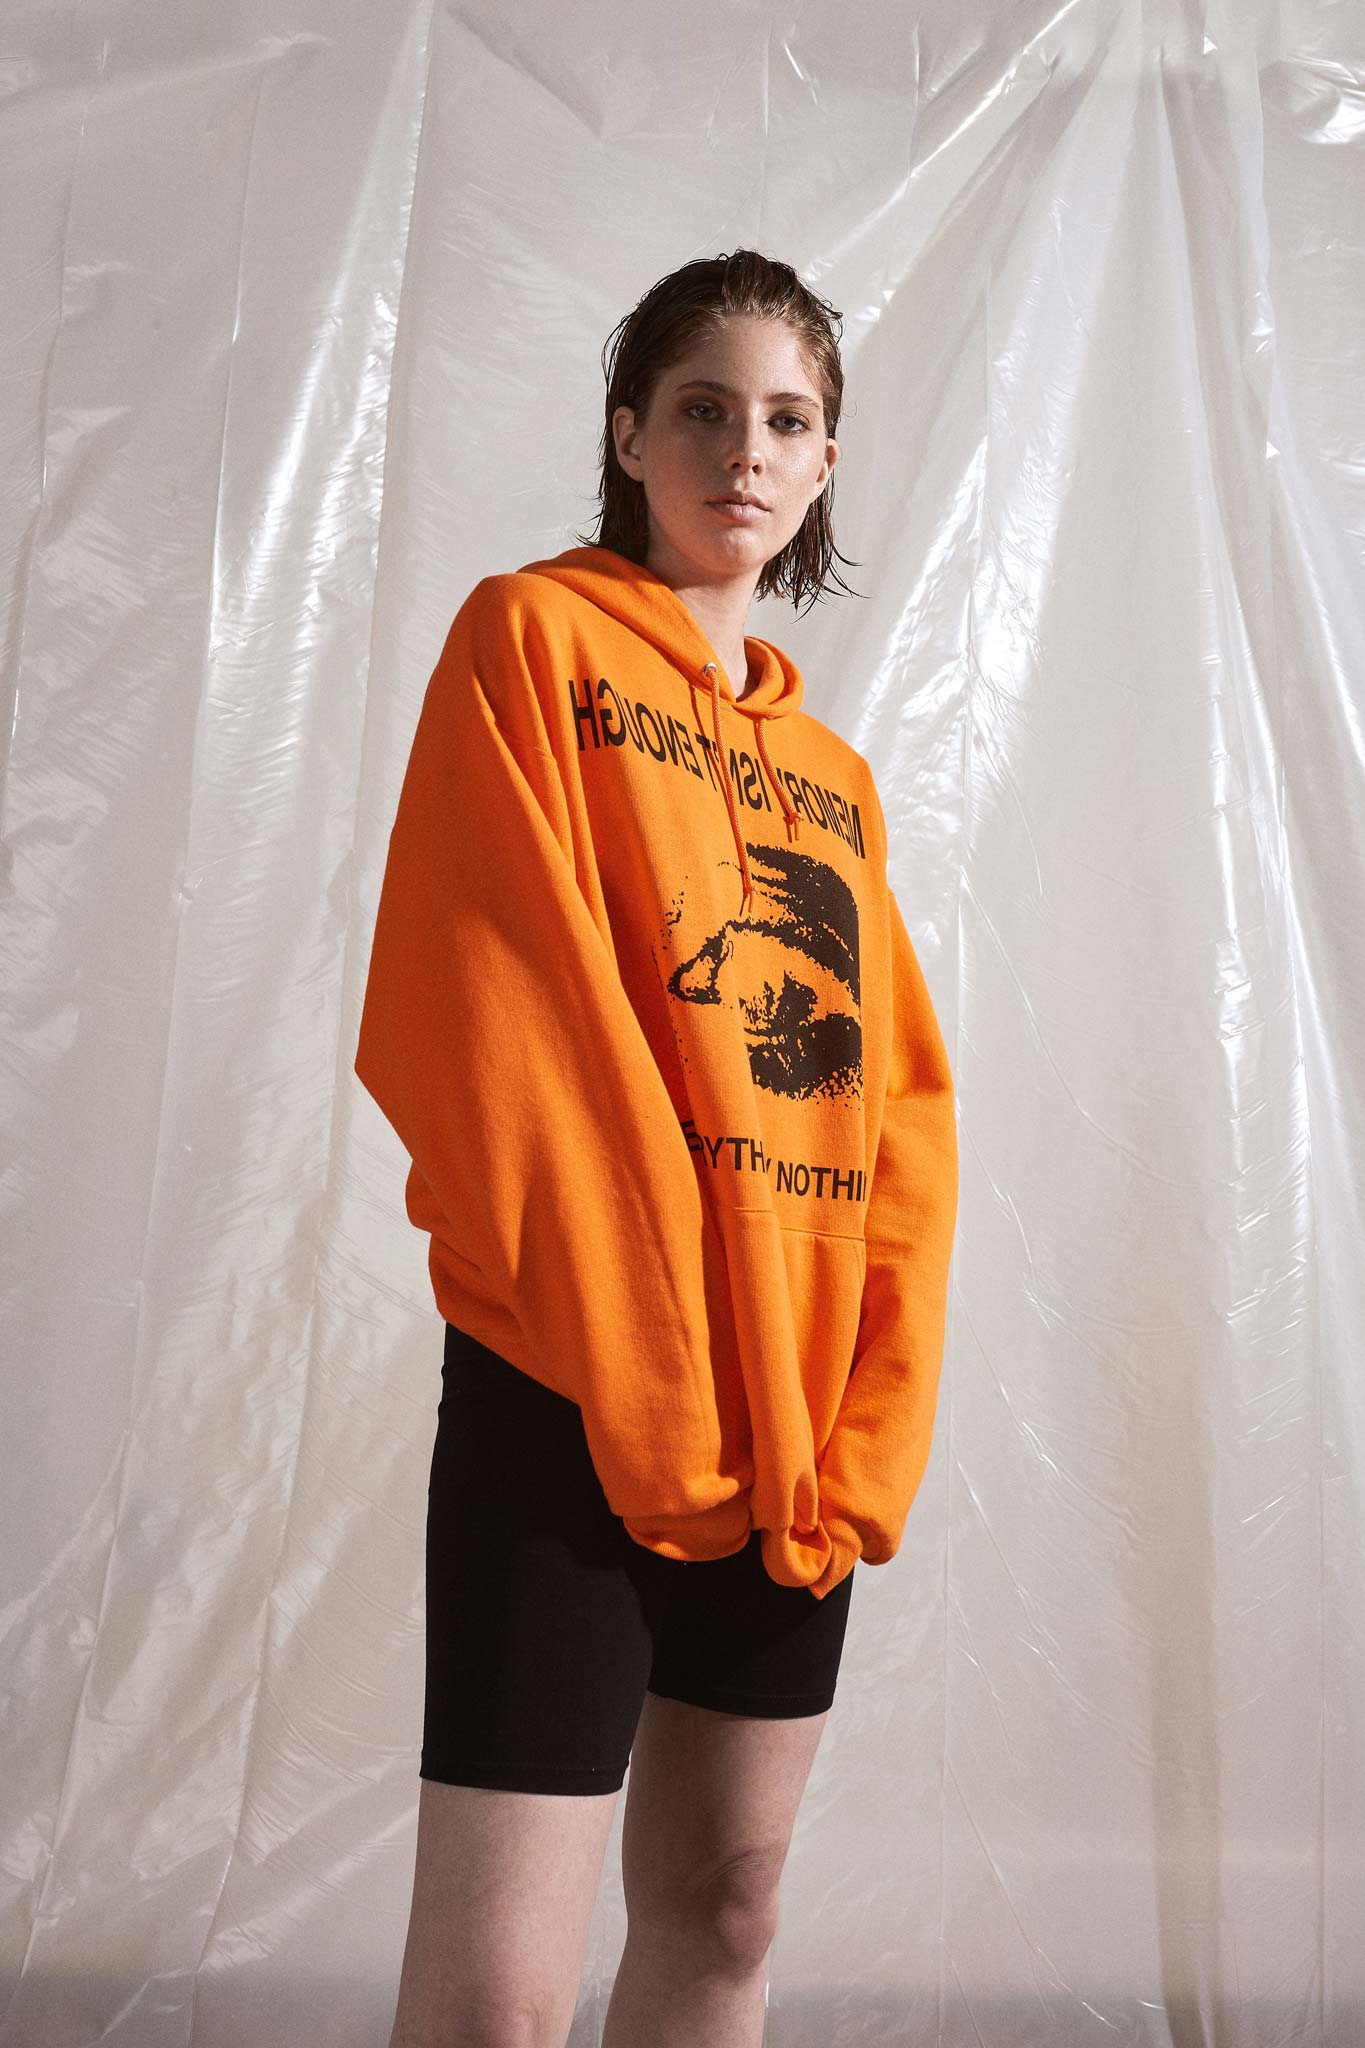 Model is wearing the  Memory Isn't Enough Oversized Safety Orange Hoodie